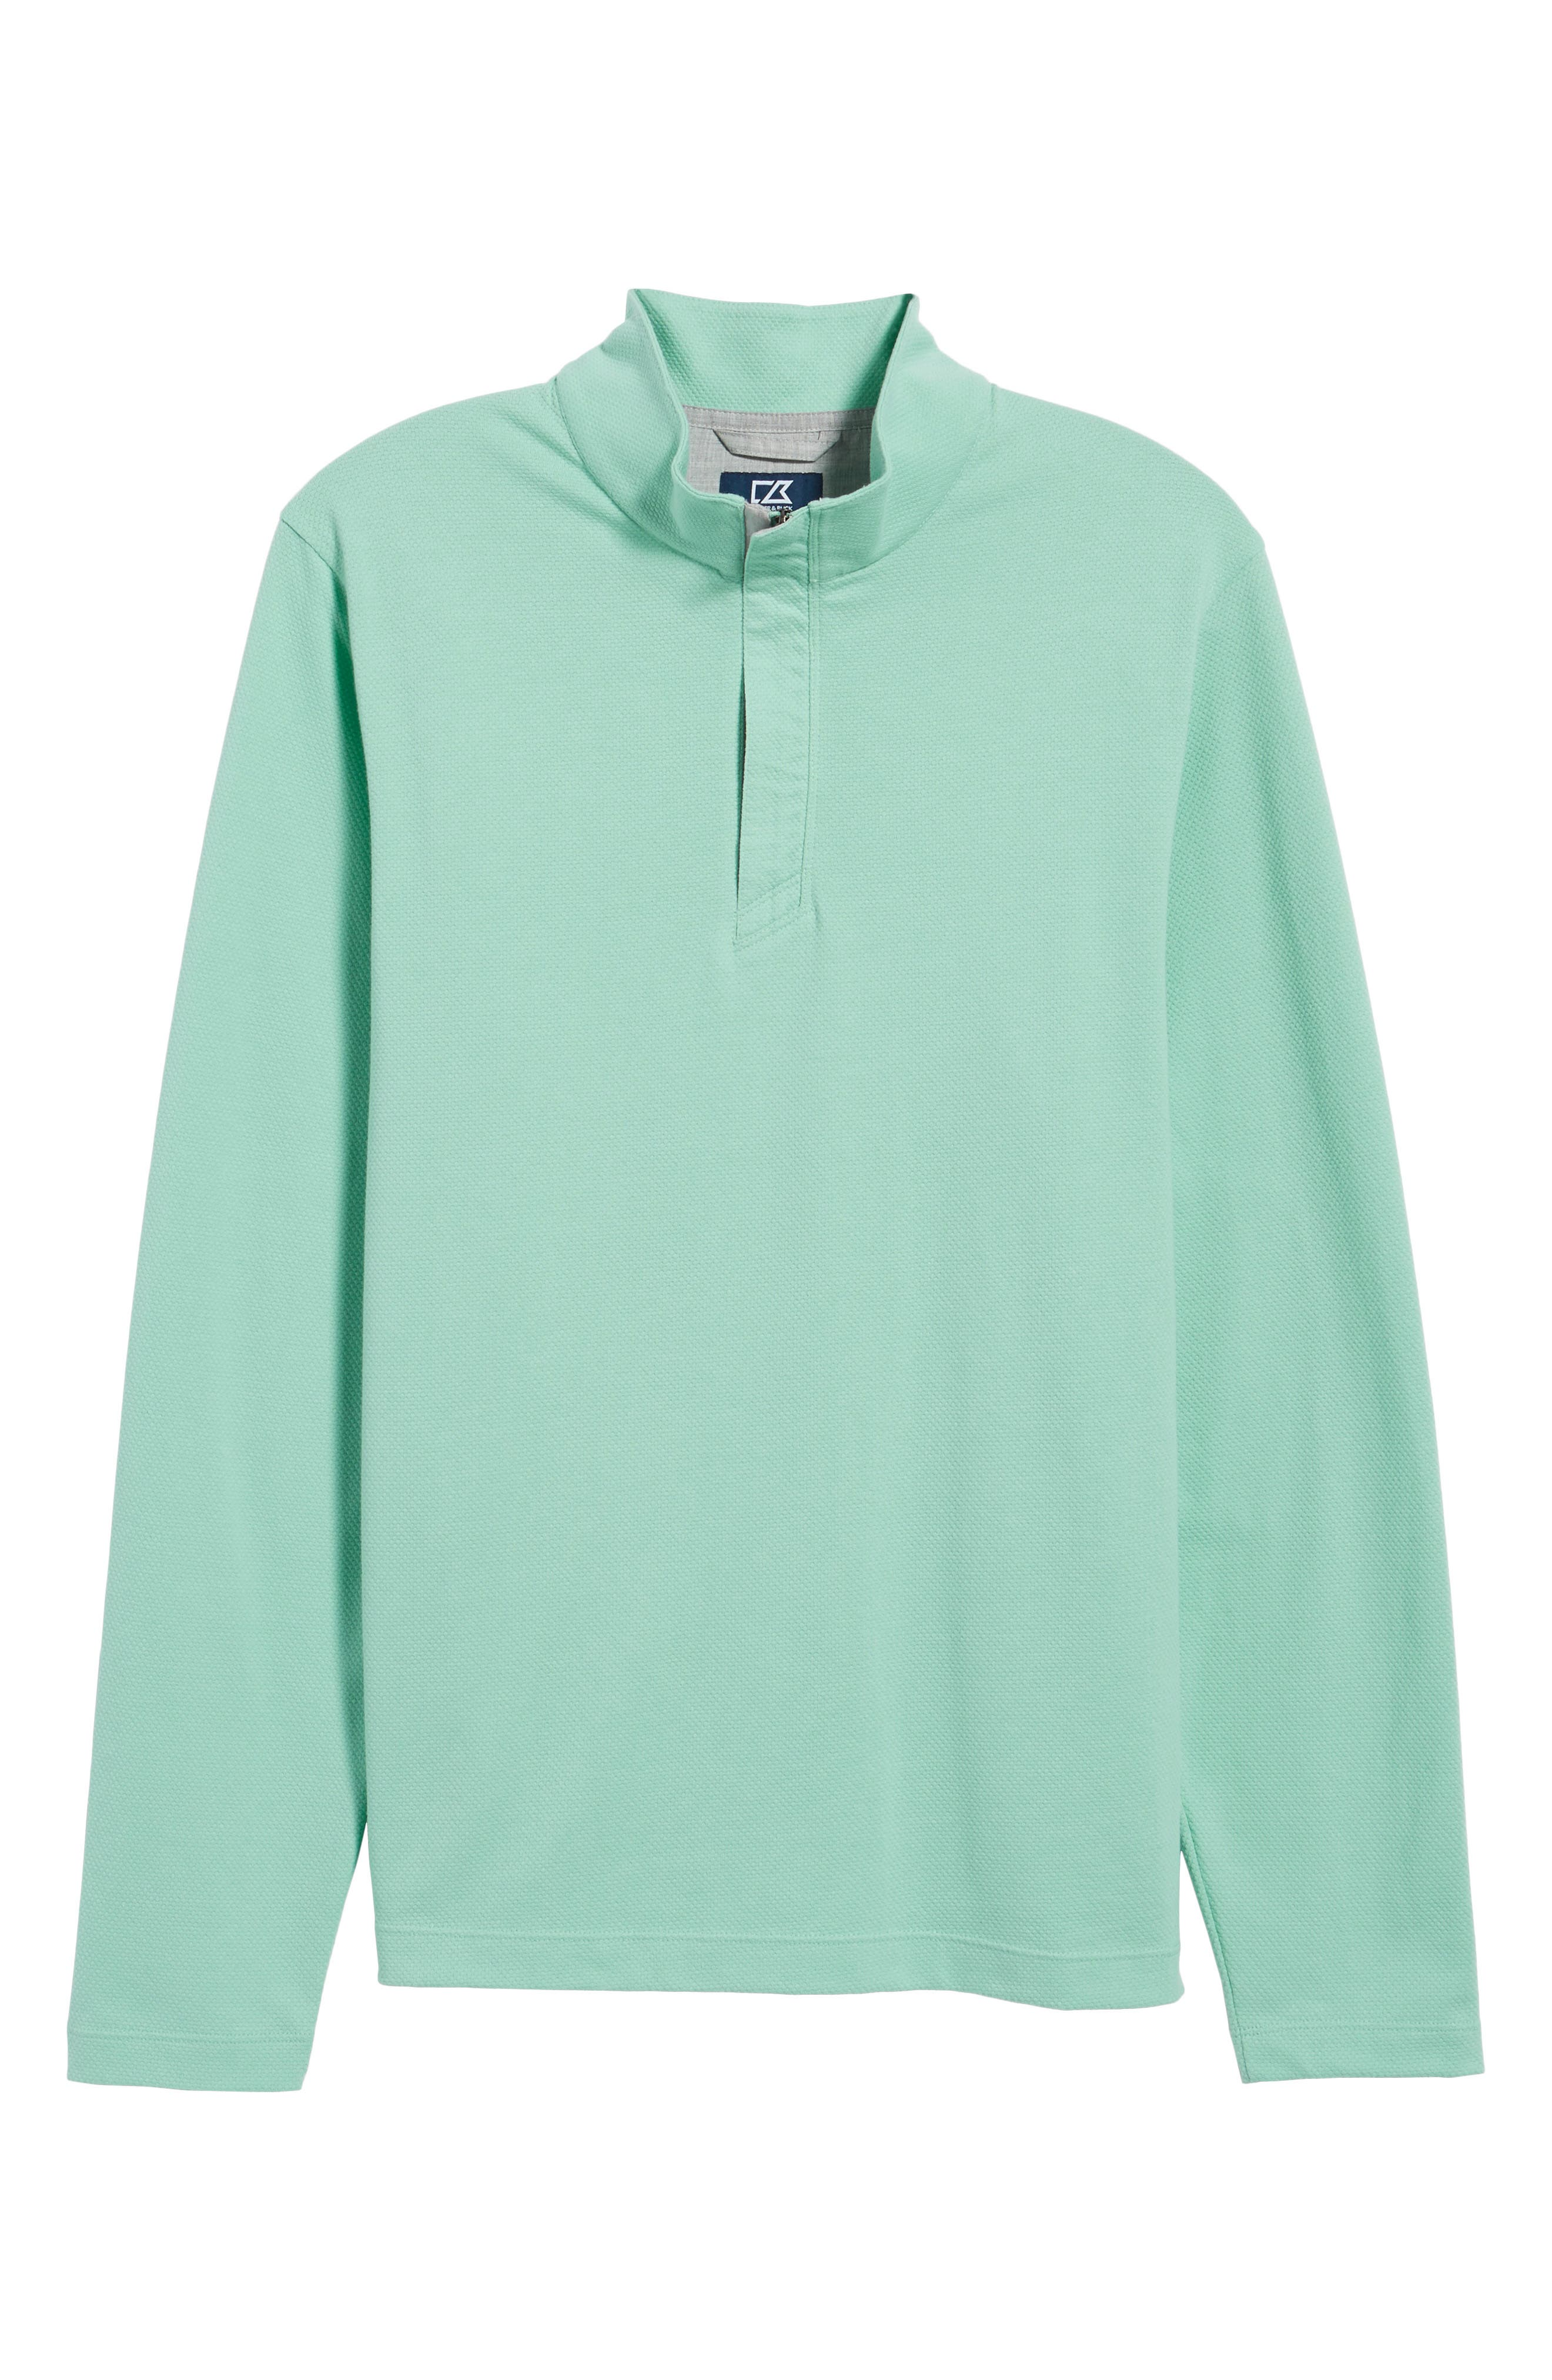 Hewitt Quarter Zip Pullover,                             Alternate thumbnail 6, color,                             Aquastone